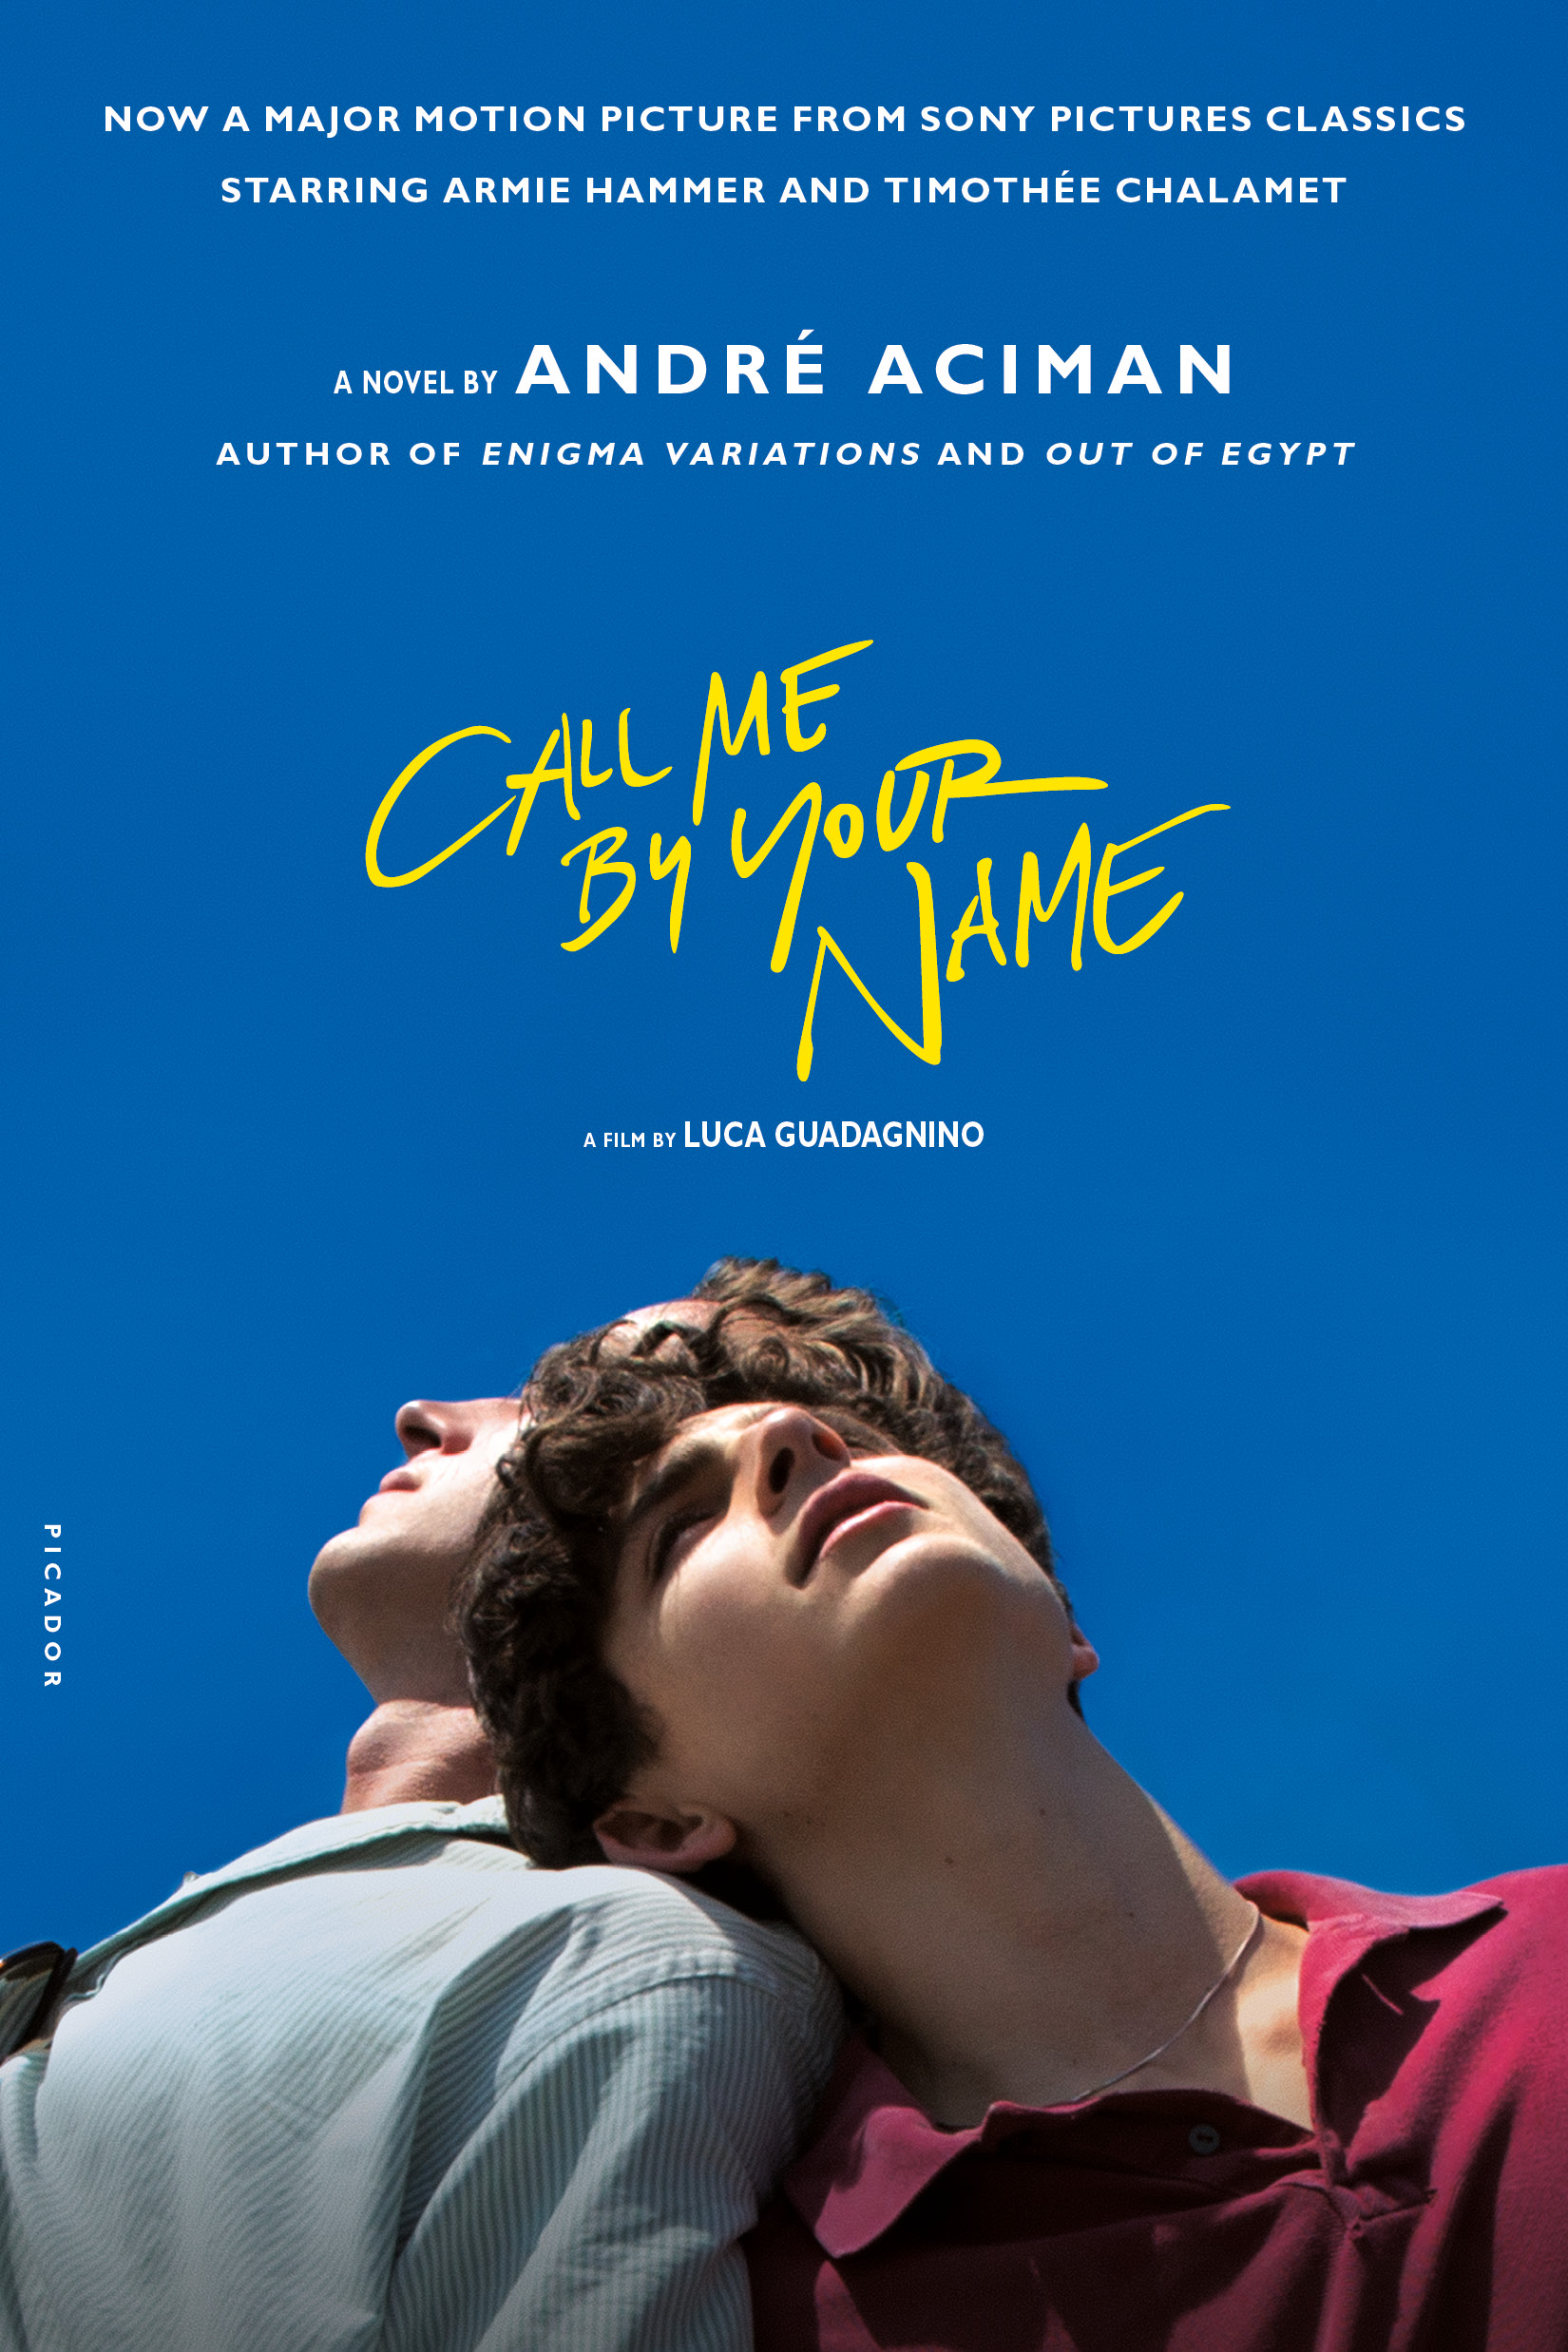 Aciman - CALL ME BY YOUR NAME - tie-in jacket